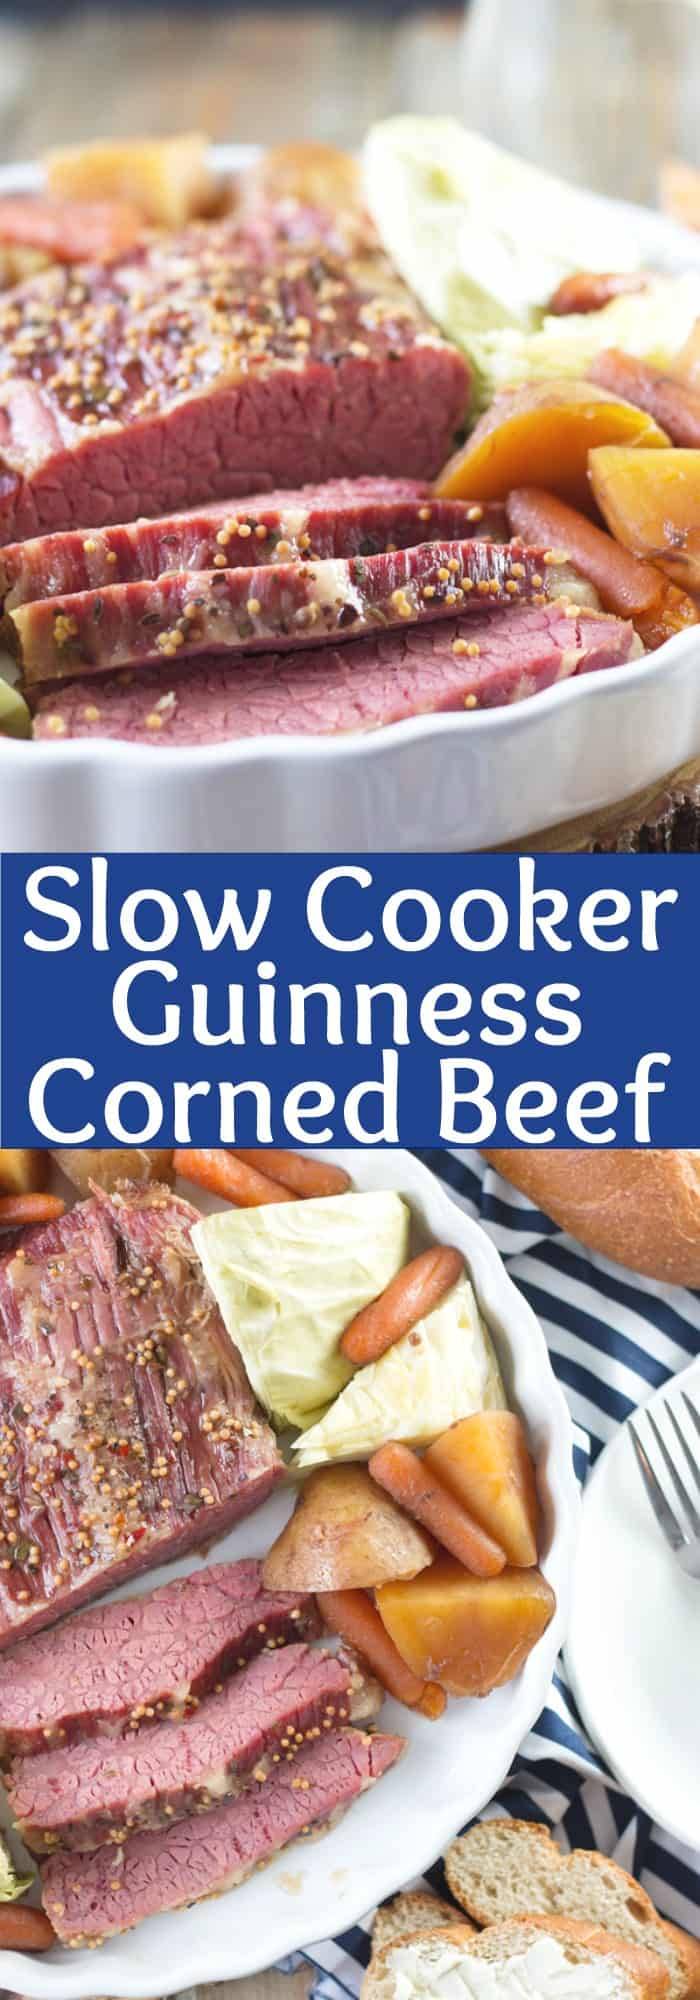 Slow Cooker Guinness Corned Beef -let the slow cooker do all the work ...